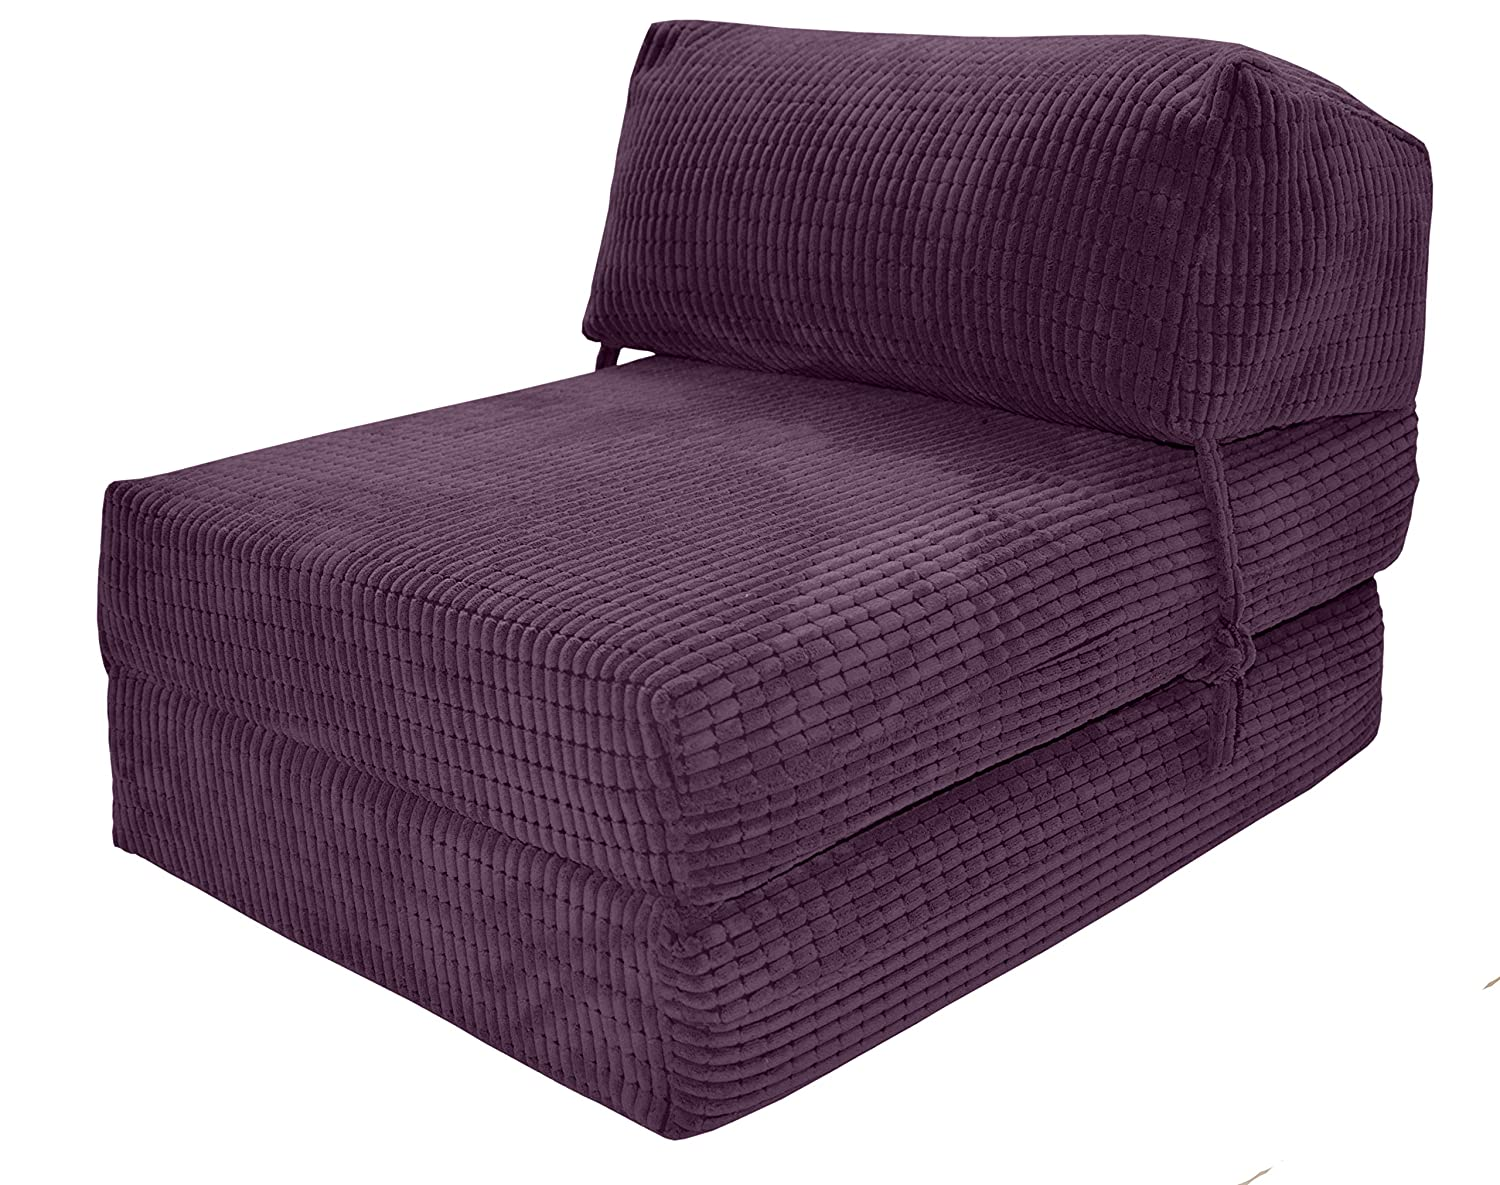 Flip chair bed ikea - Jazz Chairbed Aubergine Da Vinci Deluxe Single Chair Bed Futon